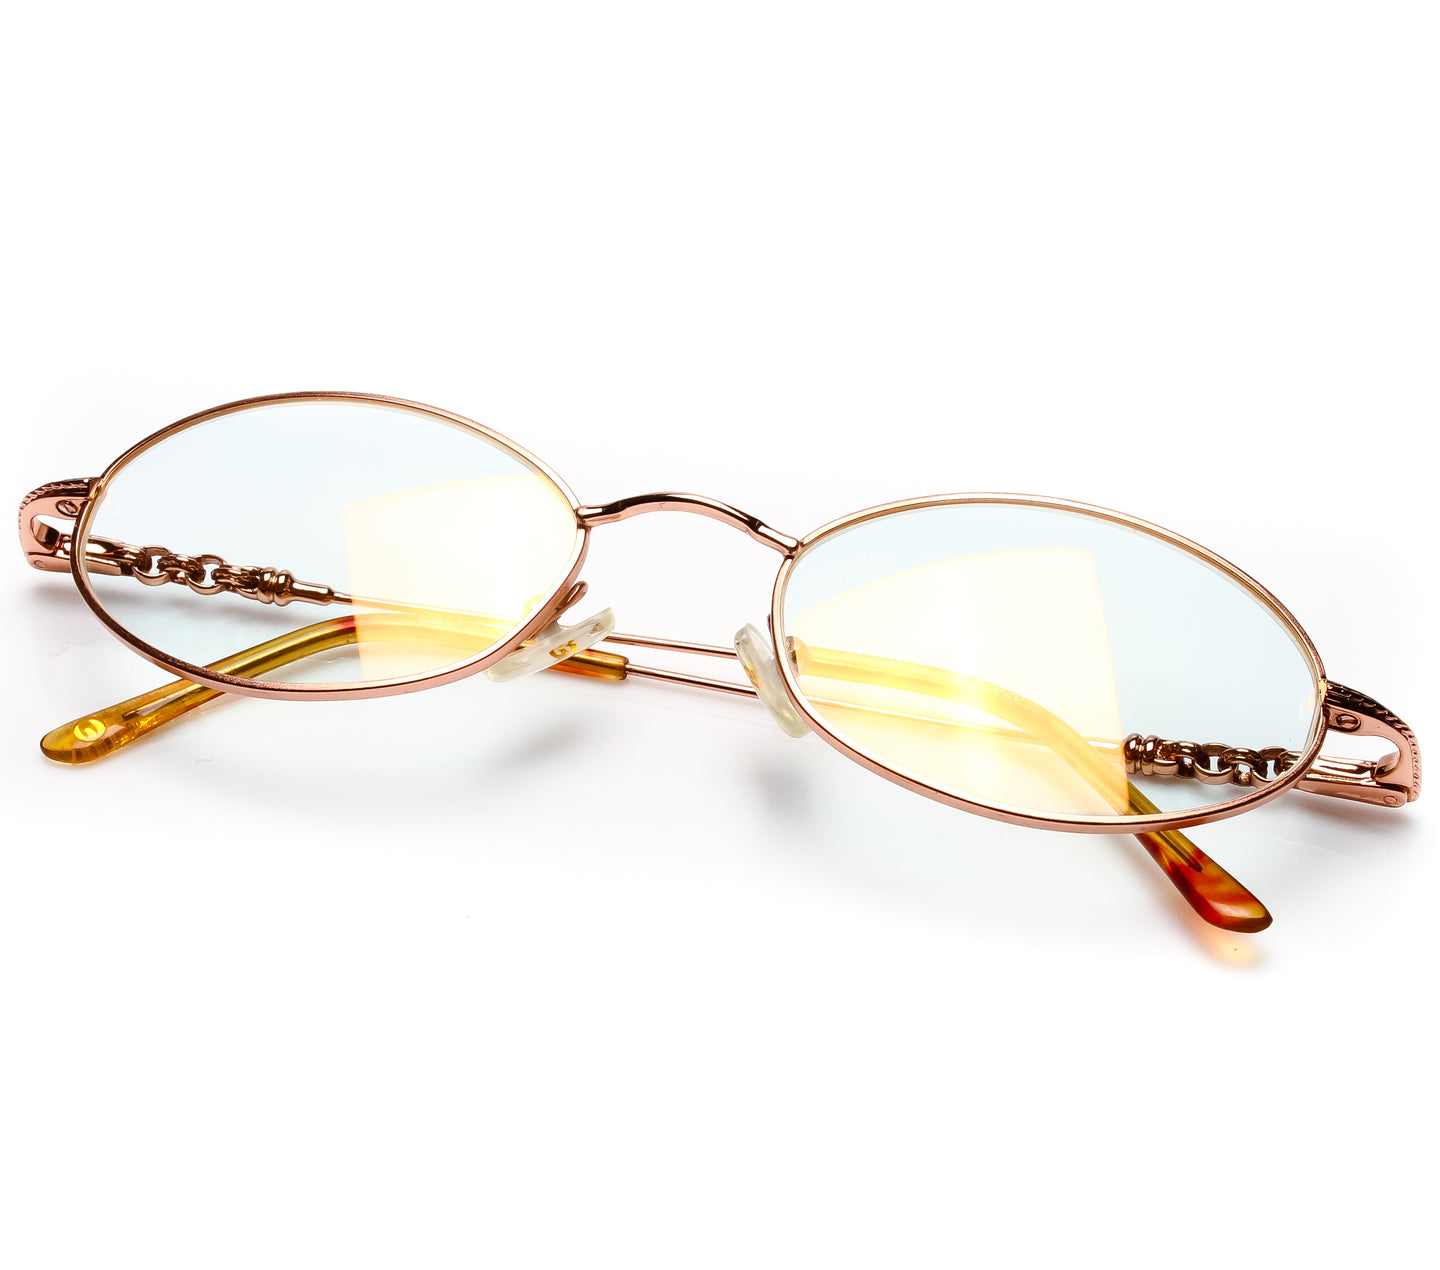 VF by Vintage Frames Chain Gang 2 (Clear Flash Gold) Thumbnail, VF by Vintage Frames , glasses frames, eyeglasses online, eyeglass frames, mens glasses, womens glasses, buy glasses online, designer eyeglasses, vintage sunglasses, retro sunglasses, vintage glasses, sunglass, eyeglass, glasses, lens, vintage frames company, vf